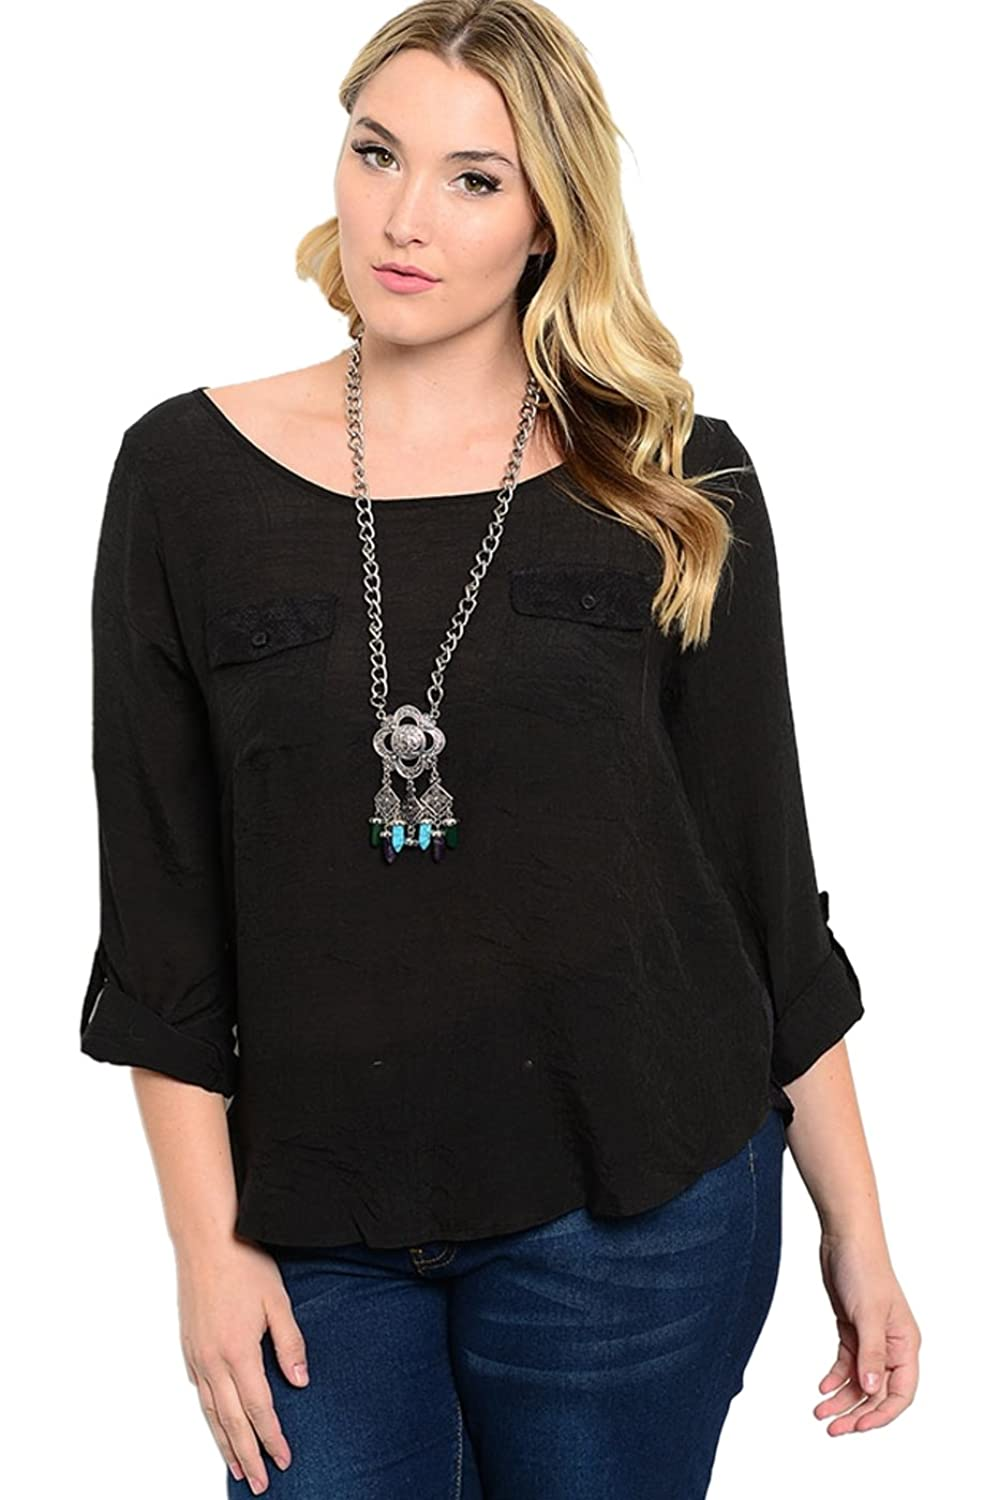 2LUV Plus Women's Plus Size 3/4 Sleeve Top with Lace Paneling